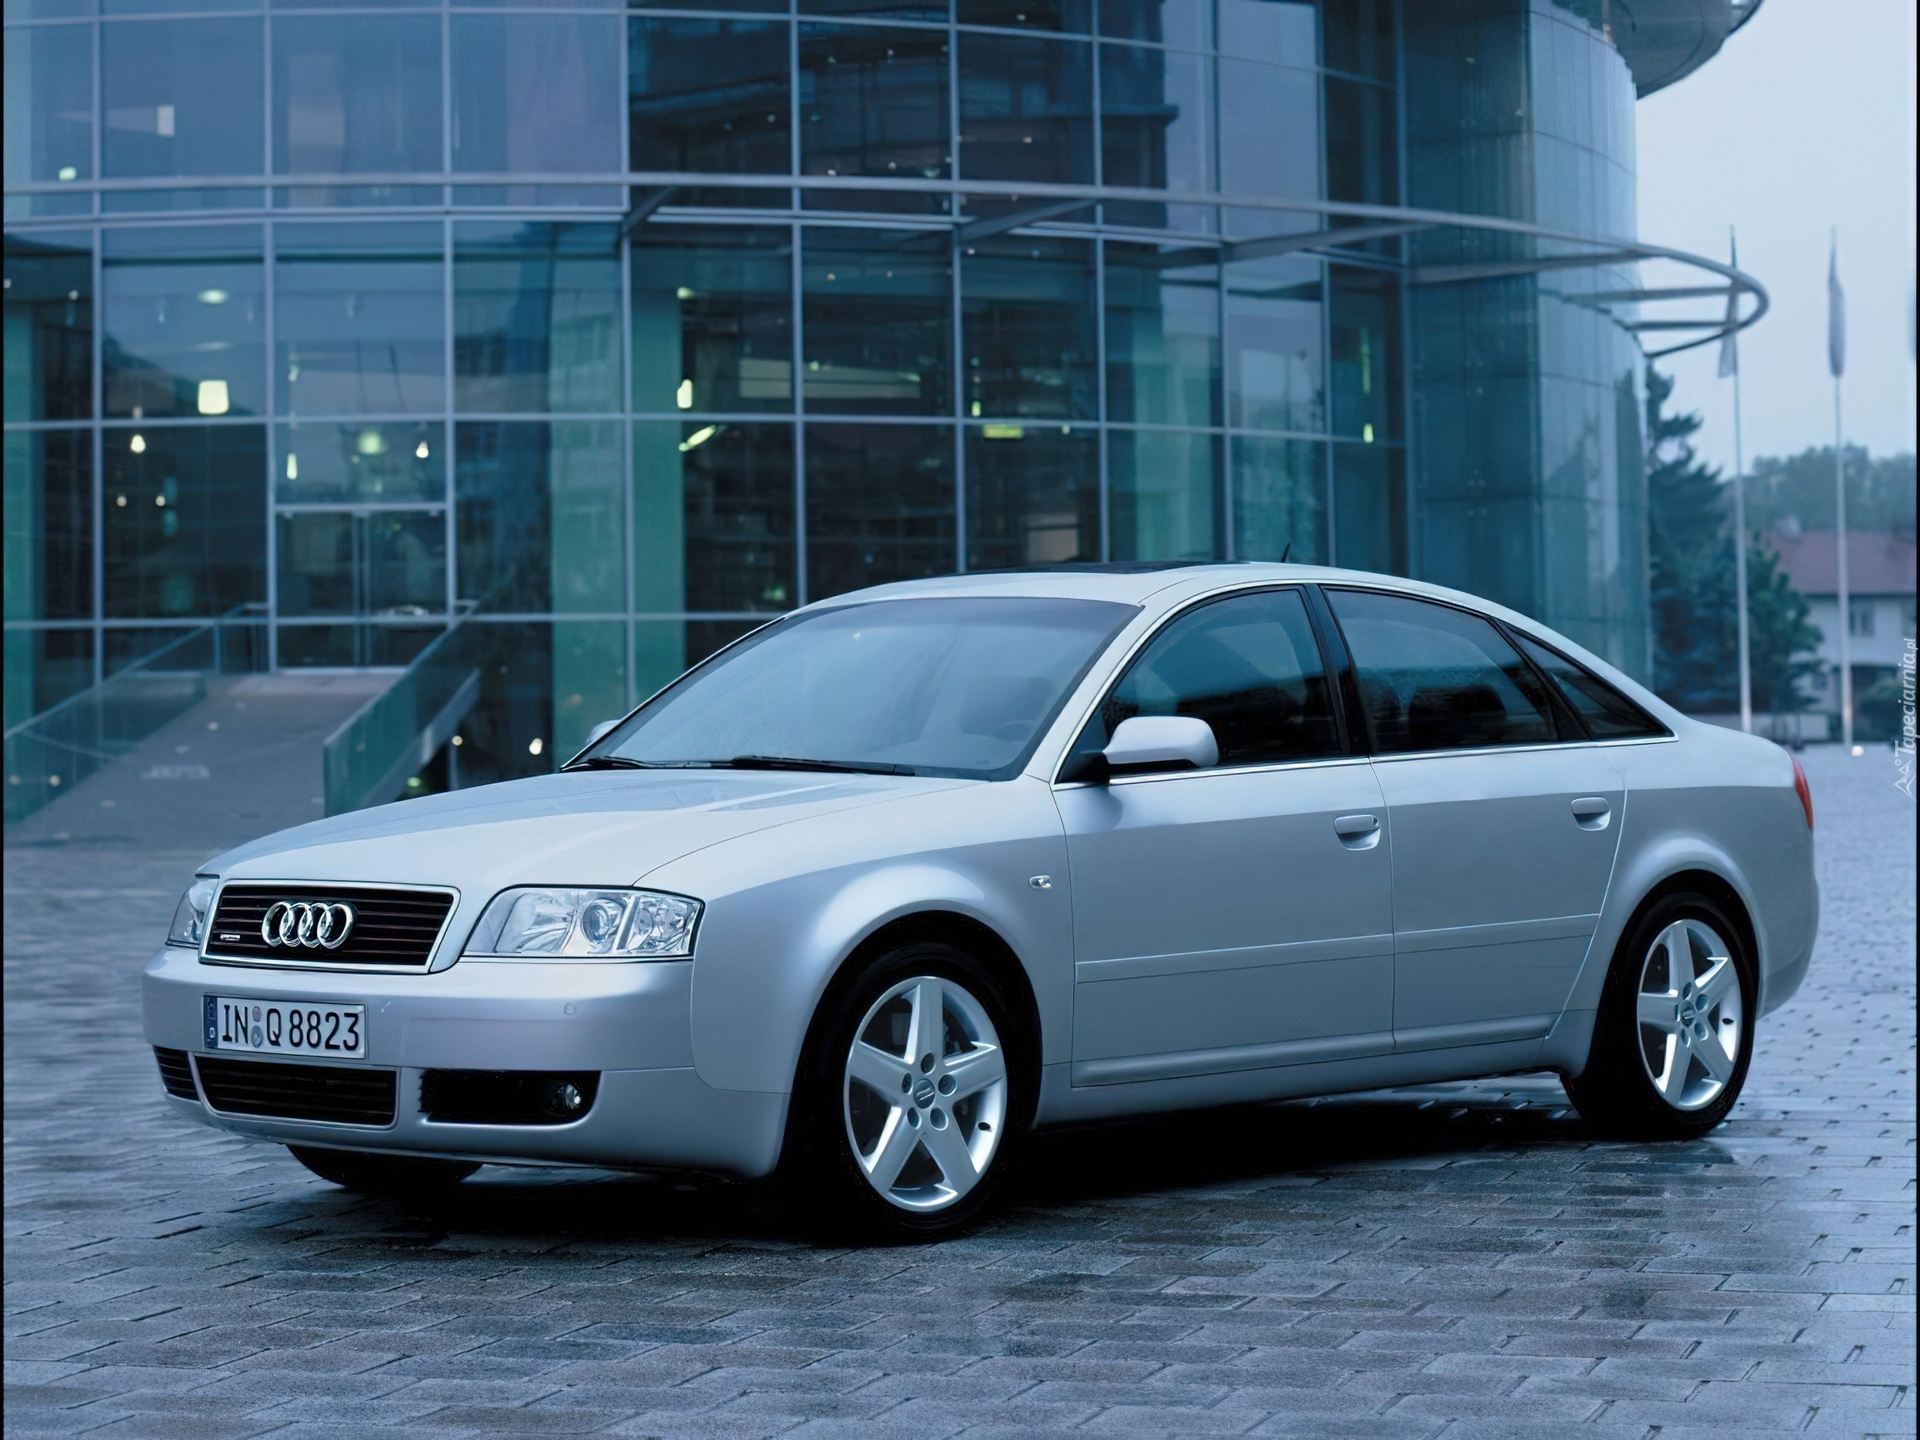 2001 audi a6 3 0 c5 related infomation specifications. Black Bedroom Furniture Sets. Home Design Ideas